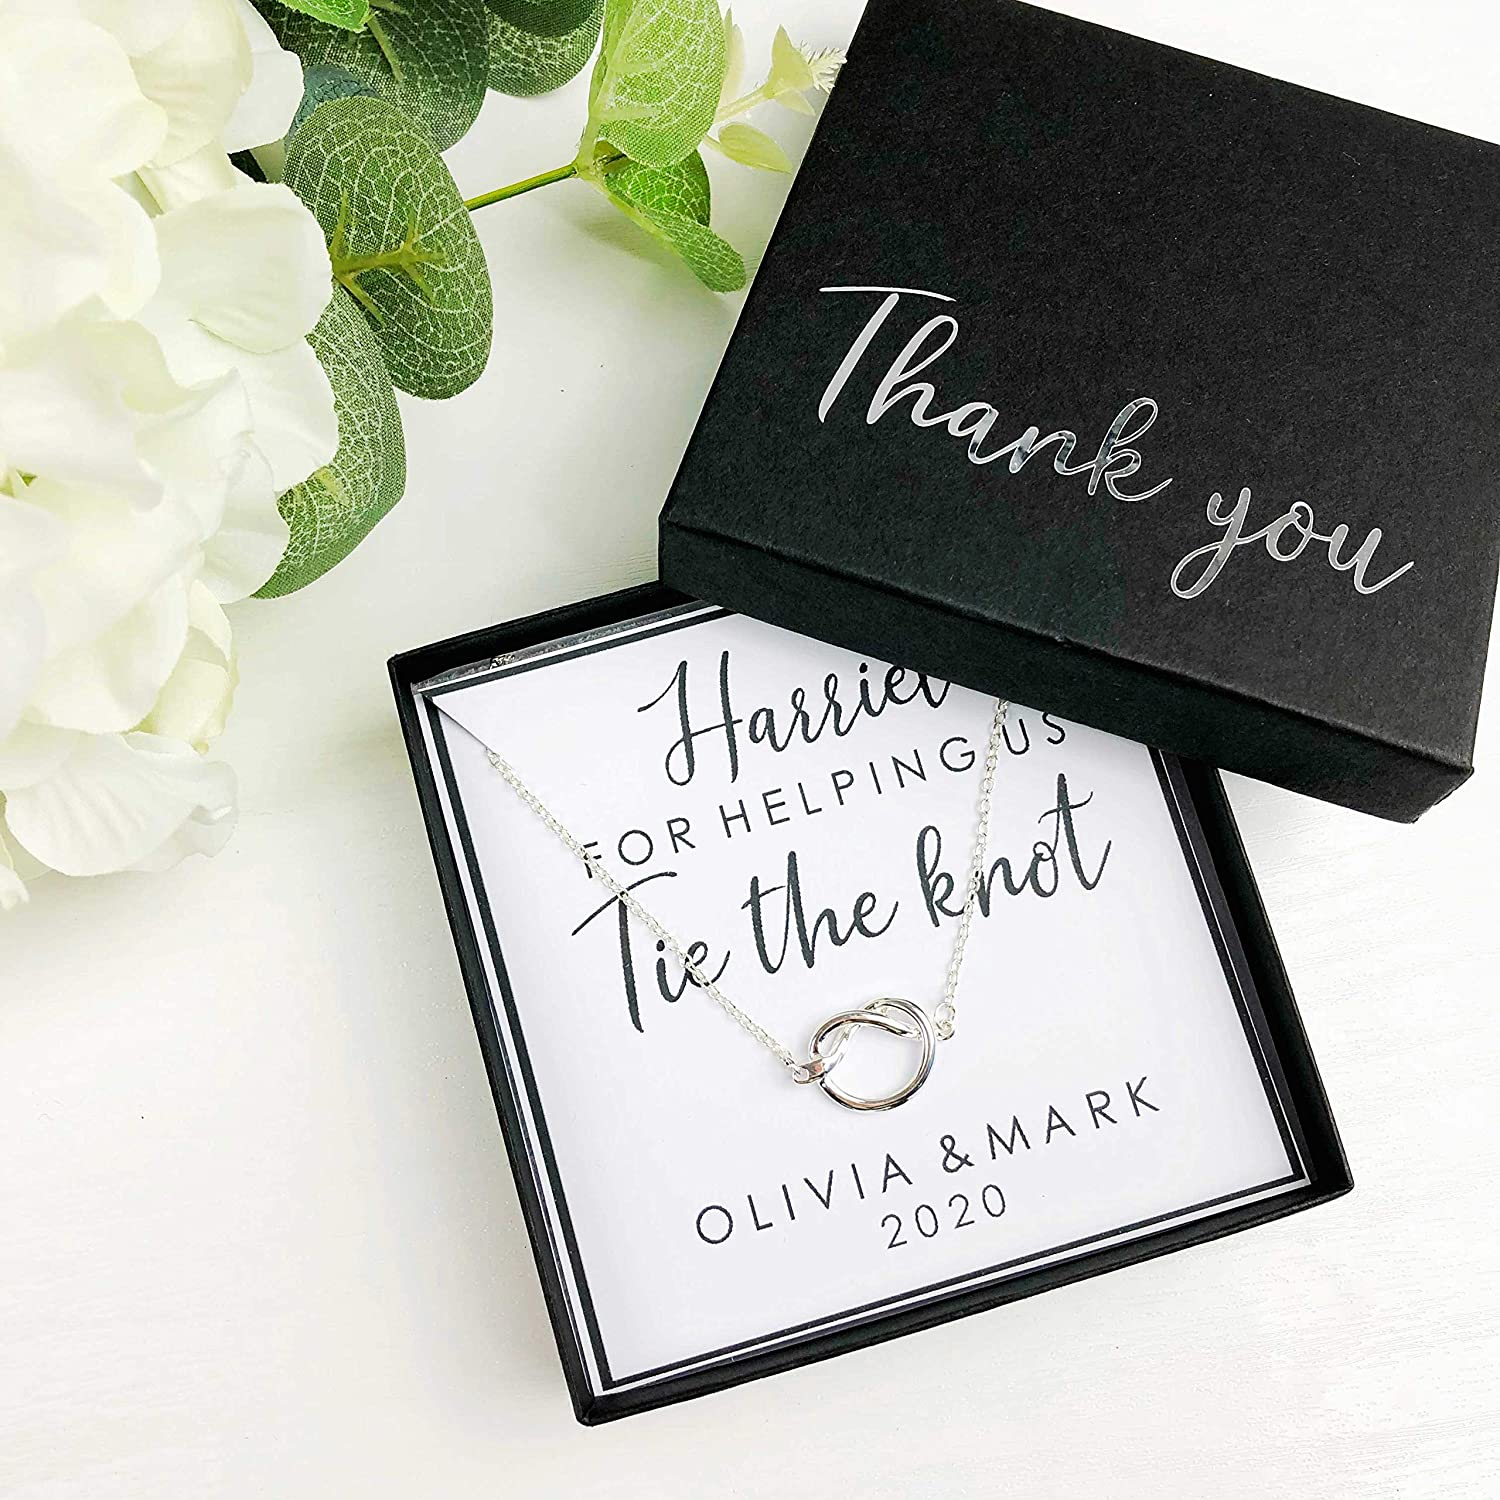 PERSONALISED BRIDESMAID GIFT THANK YOU FOR HELPING US TIE THE KNOT NECKLACE BOX